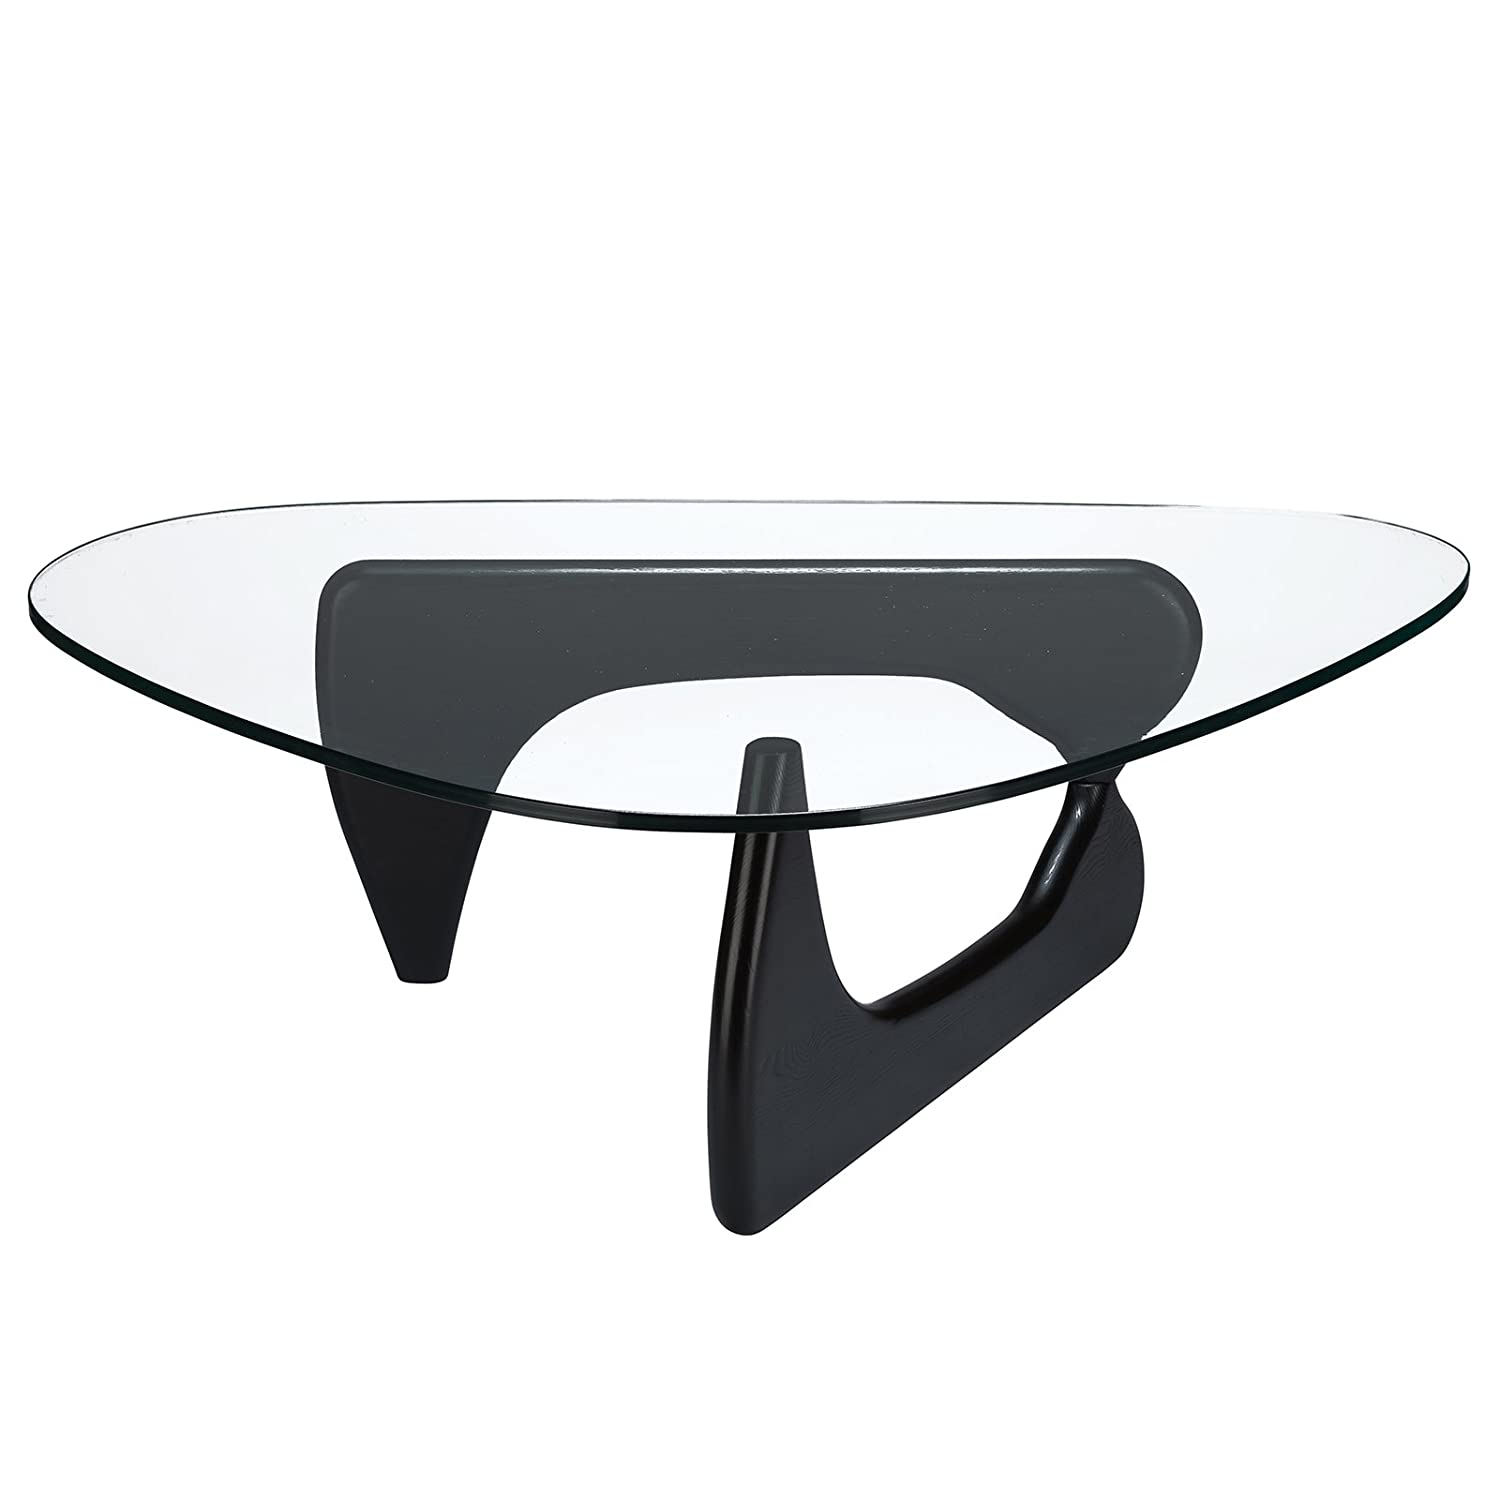 Amazon Poly and Bark Isamu Noguchi Style Coffee Table Black